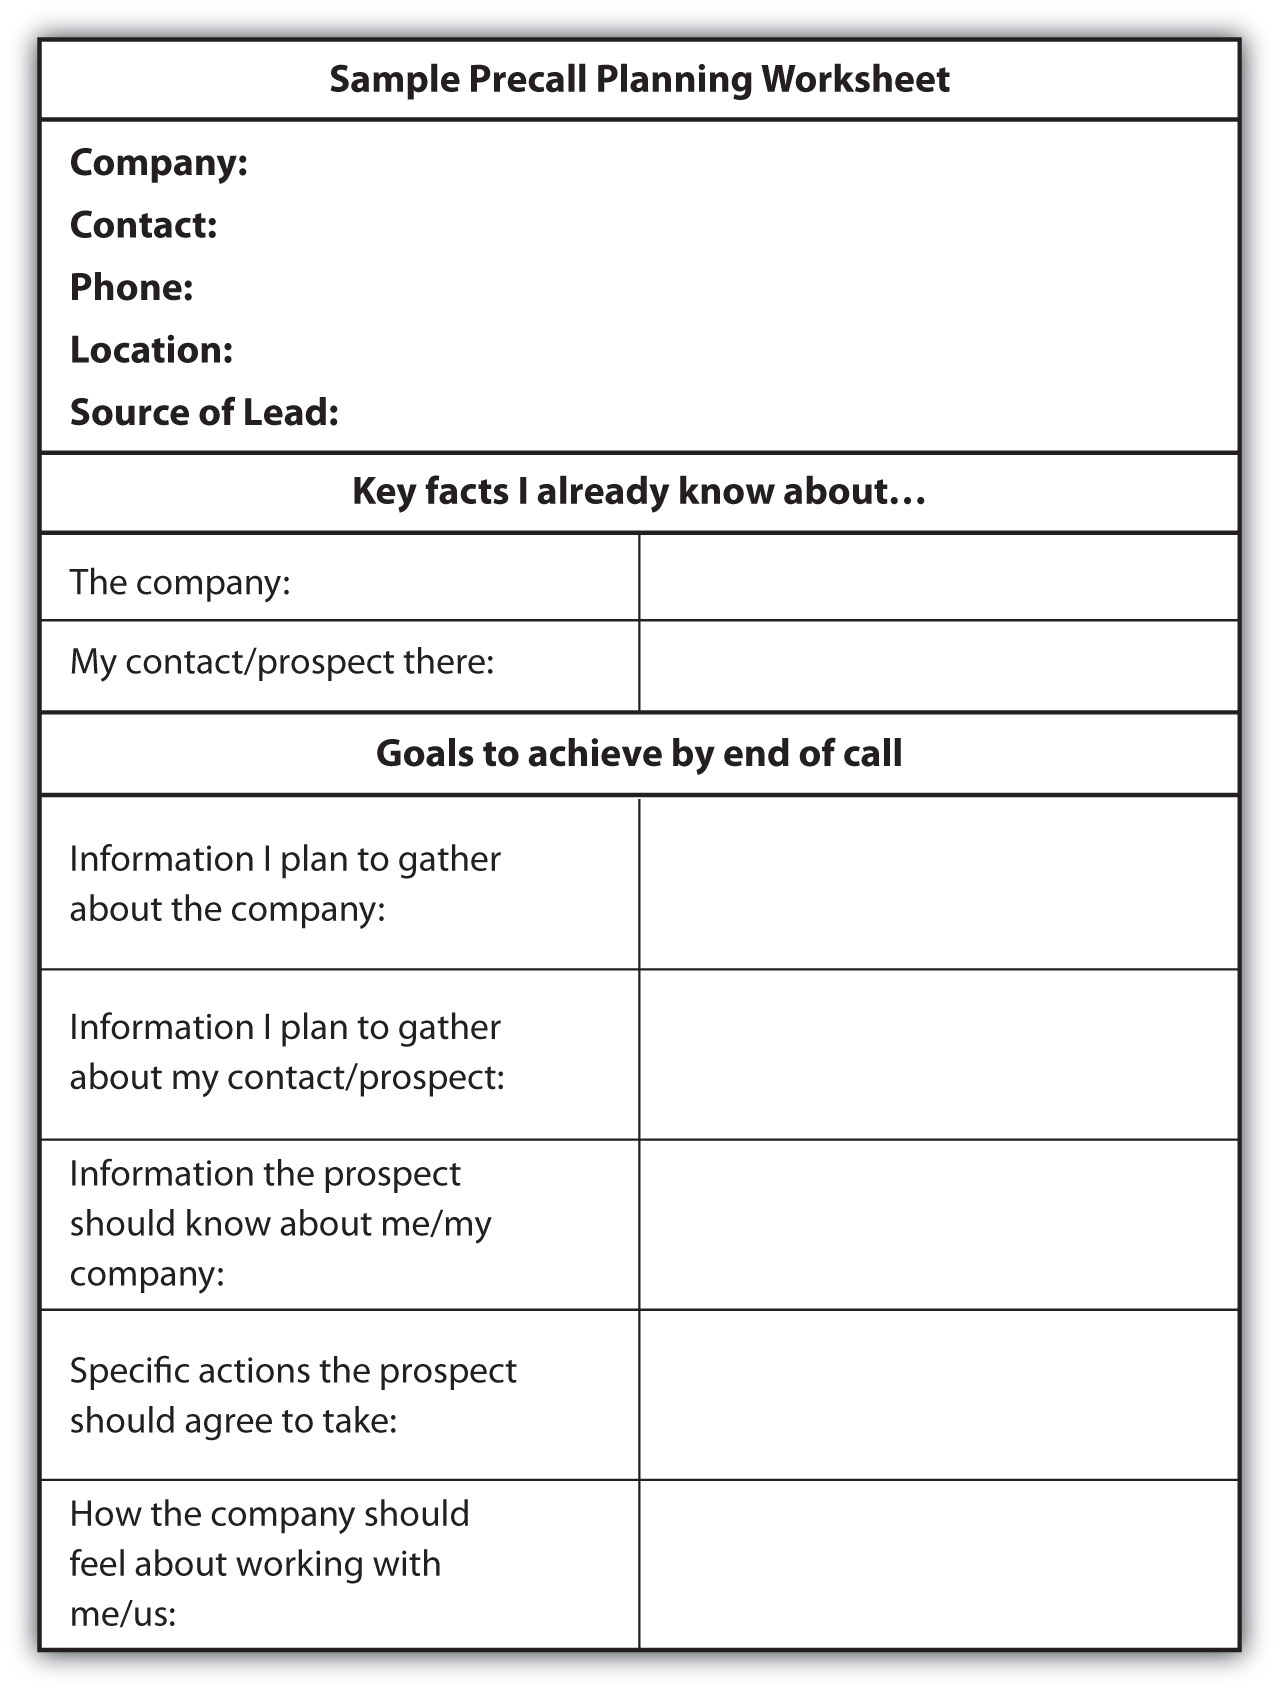 worksheet life goals worksheet joindesignseattle worksheet site 5 personal goal setting worksheets templates printable pdf you can use this worksheet in the same way as number 1 to think through what want achieve